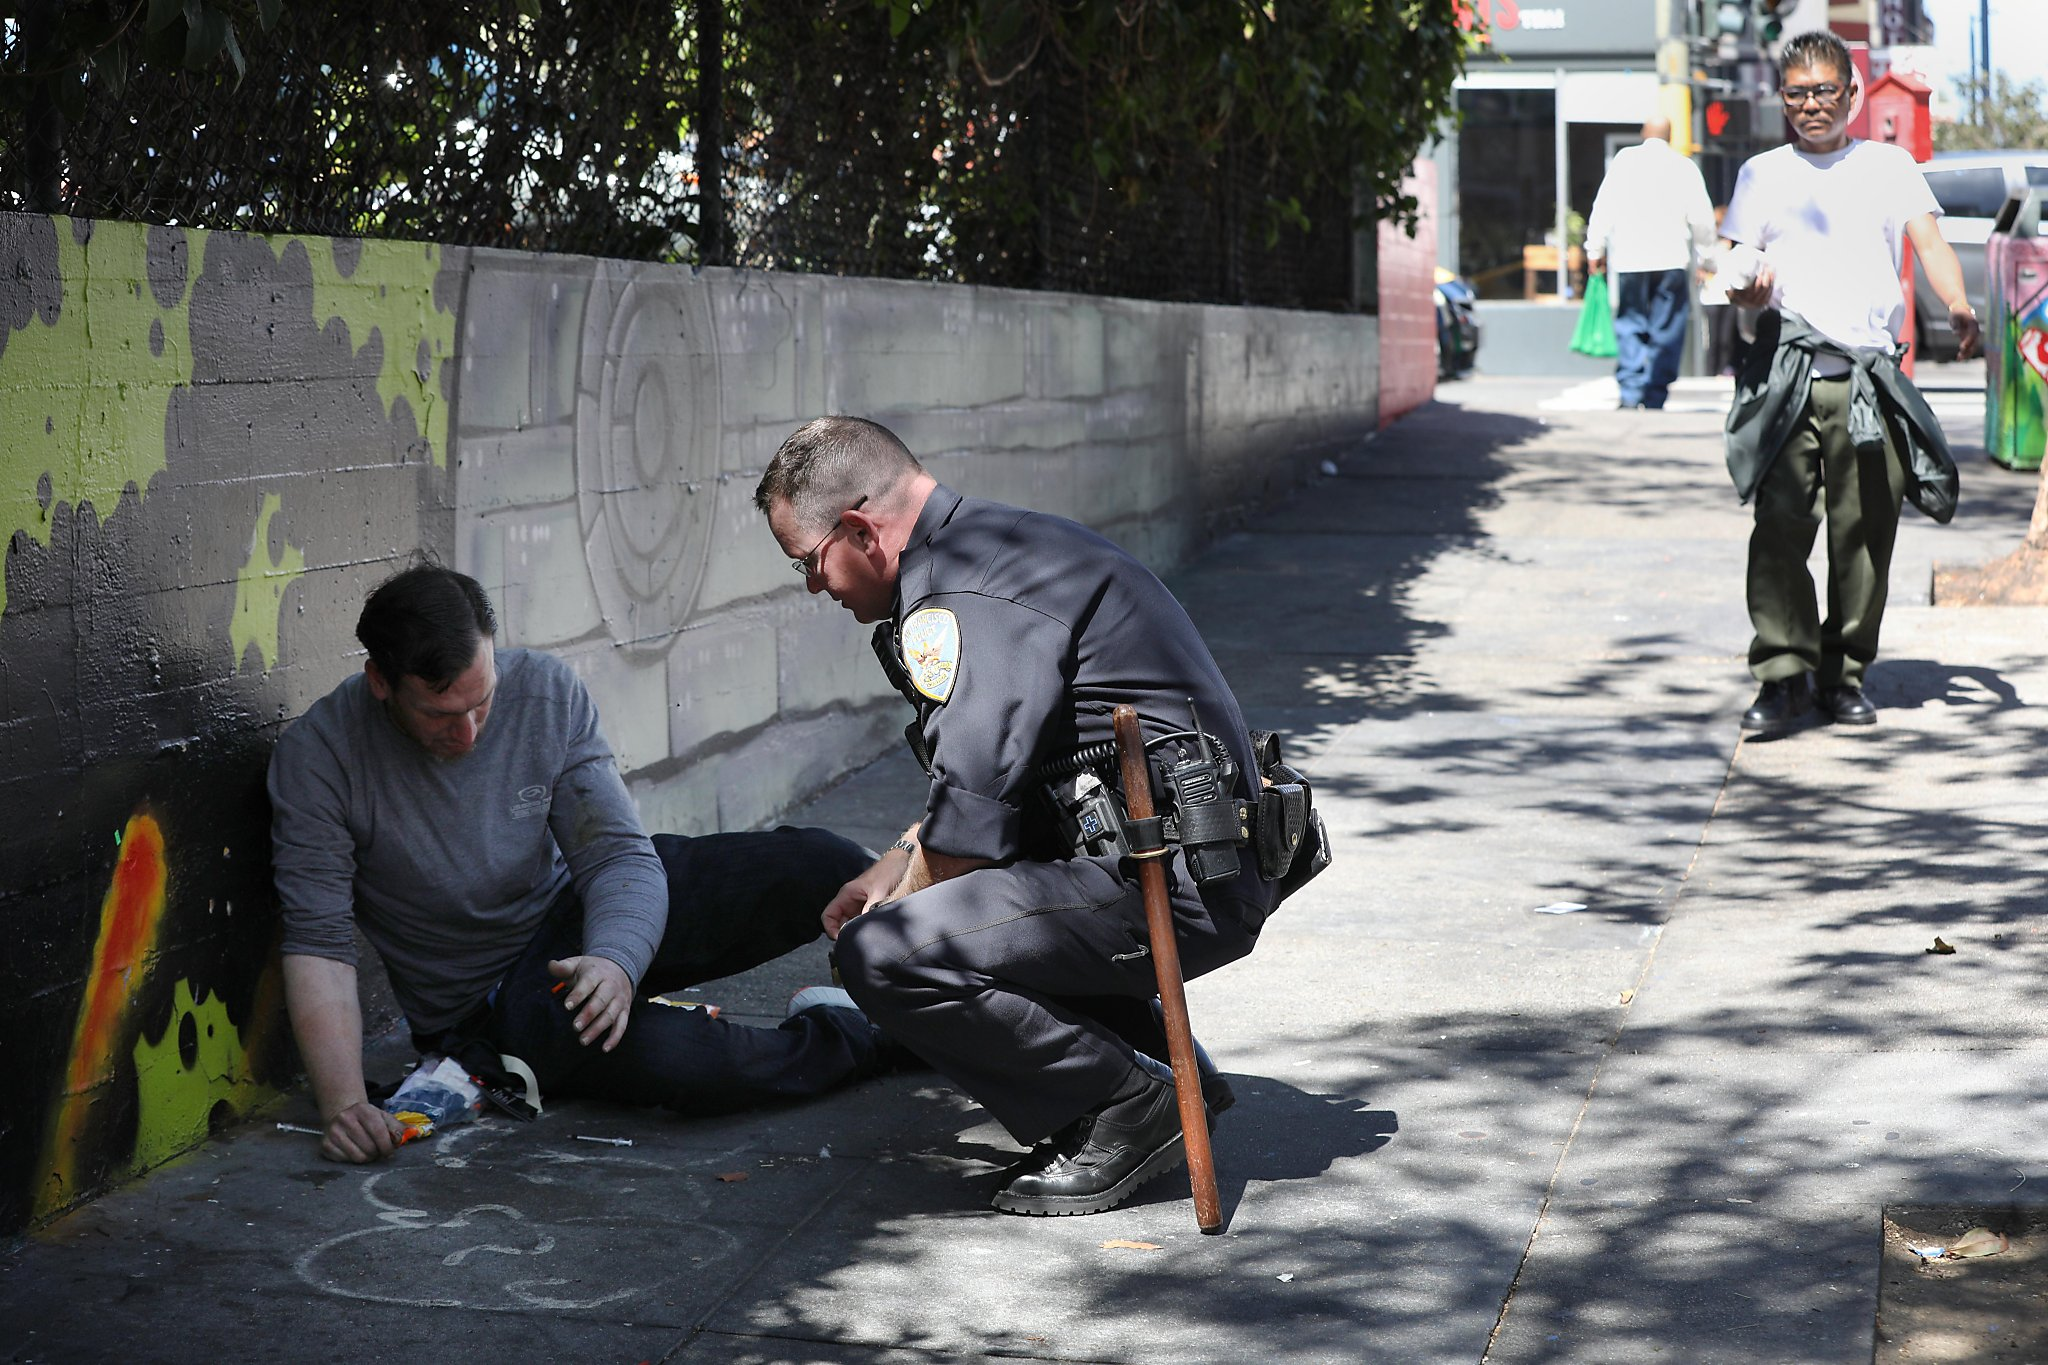 San Francisco - where drug addicts outnumber high school students